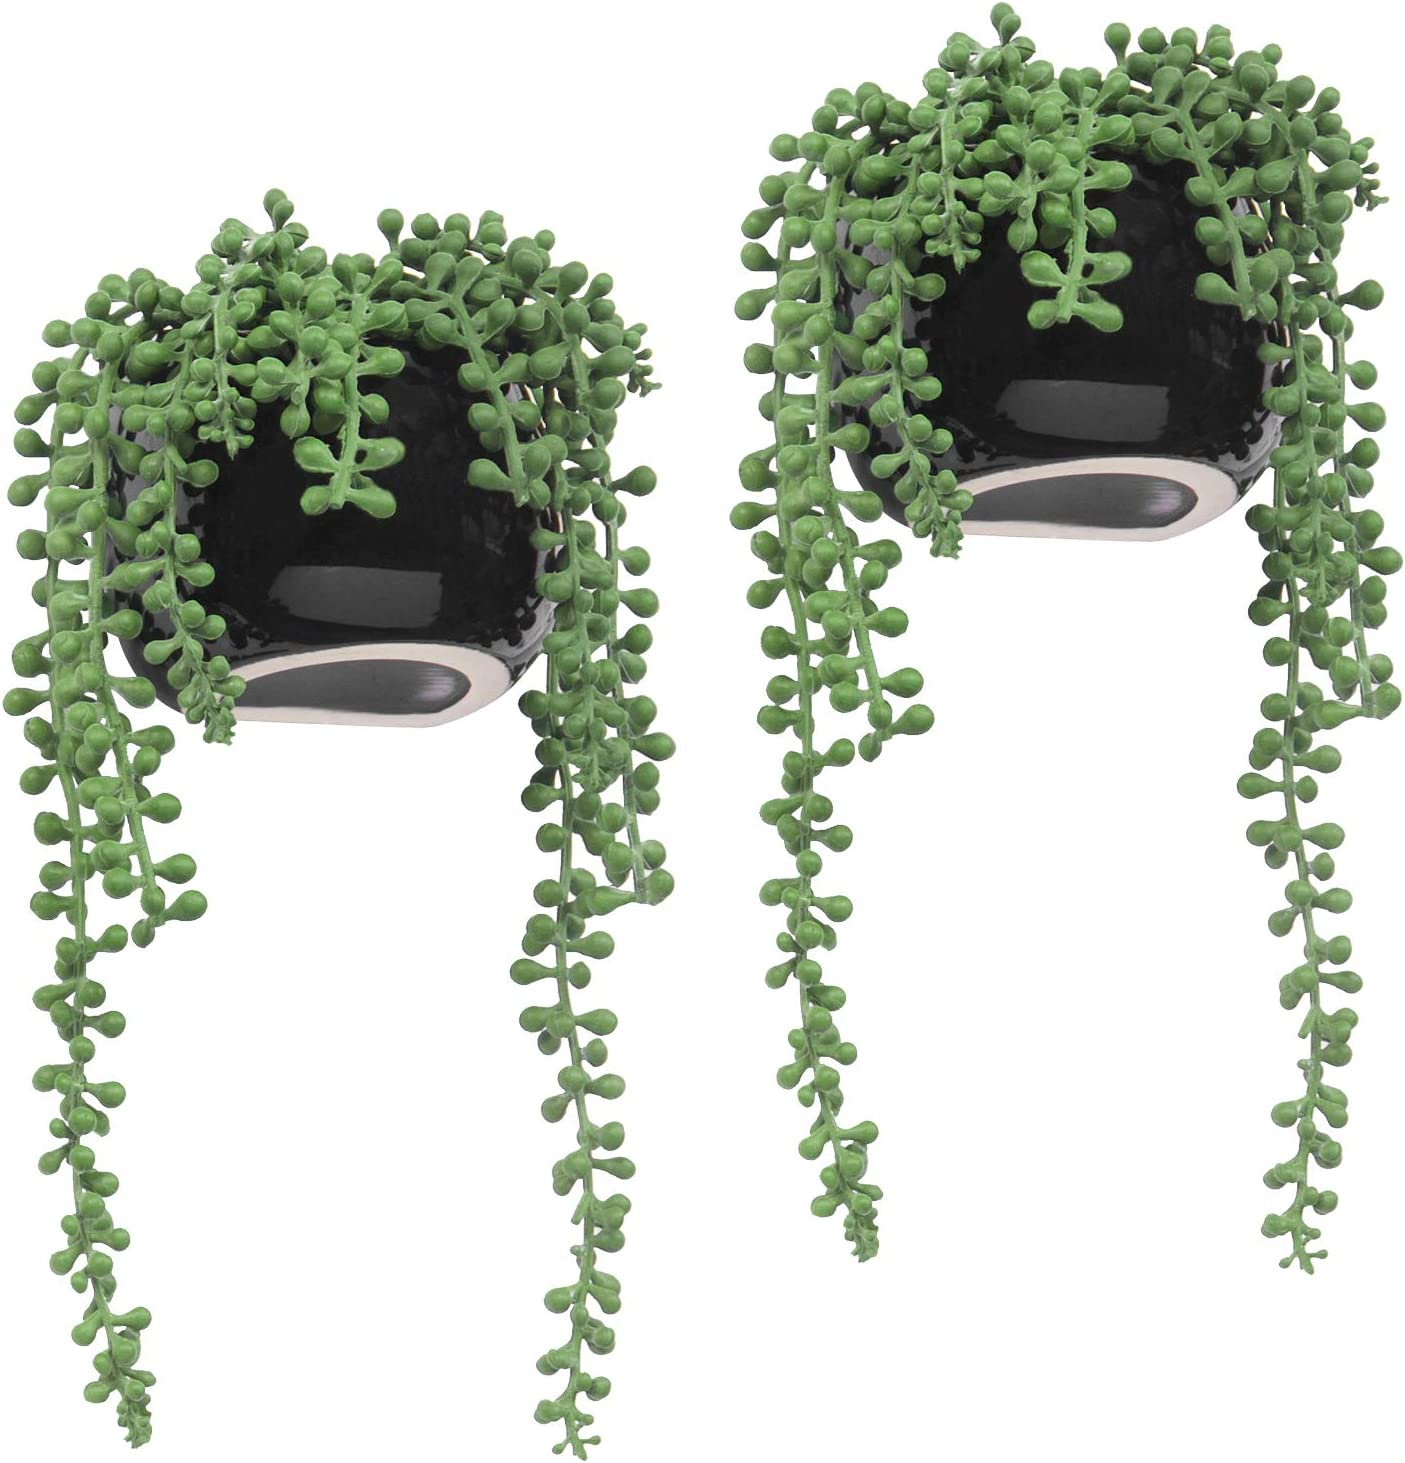 MyGift 10-inch Wall-Mounted Artificial String of Pearls Plants in Black Ceramic Planters, Set of 2